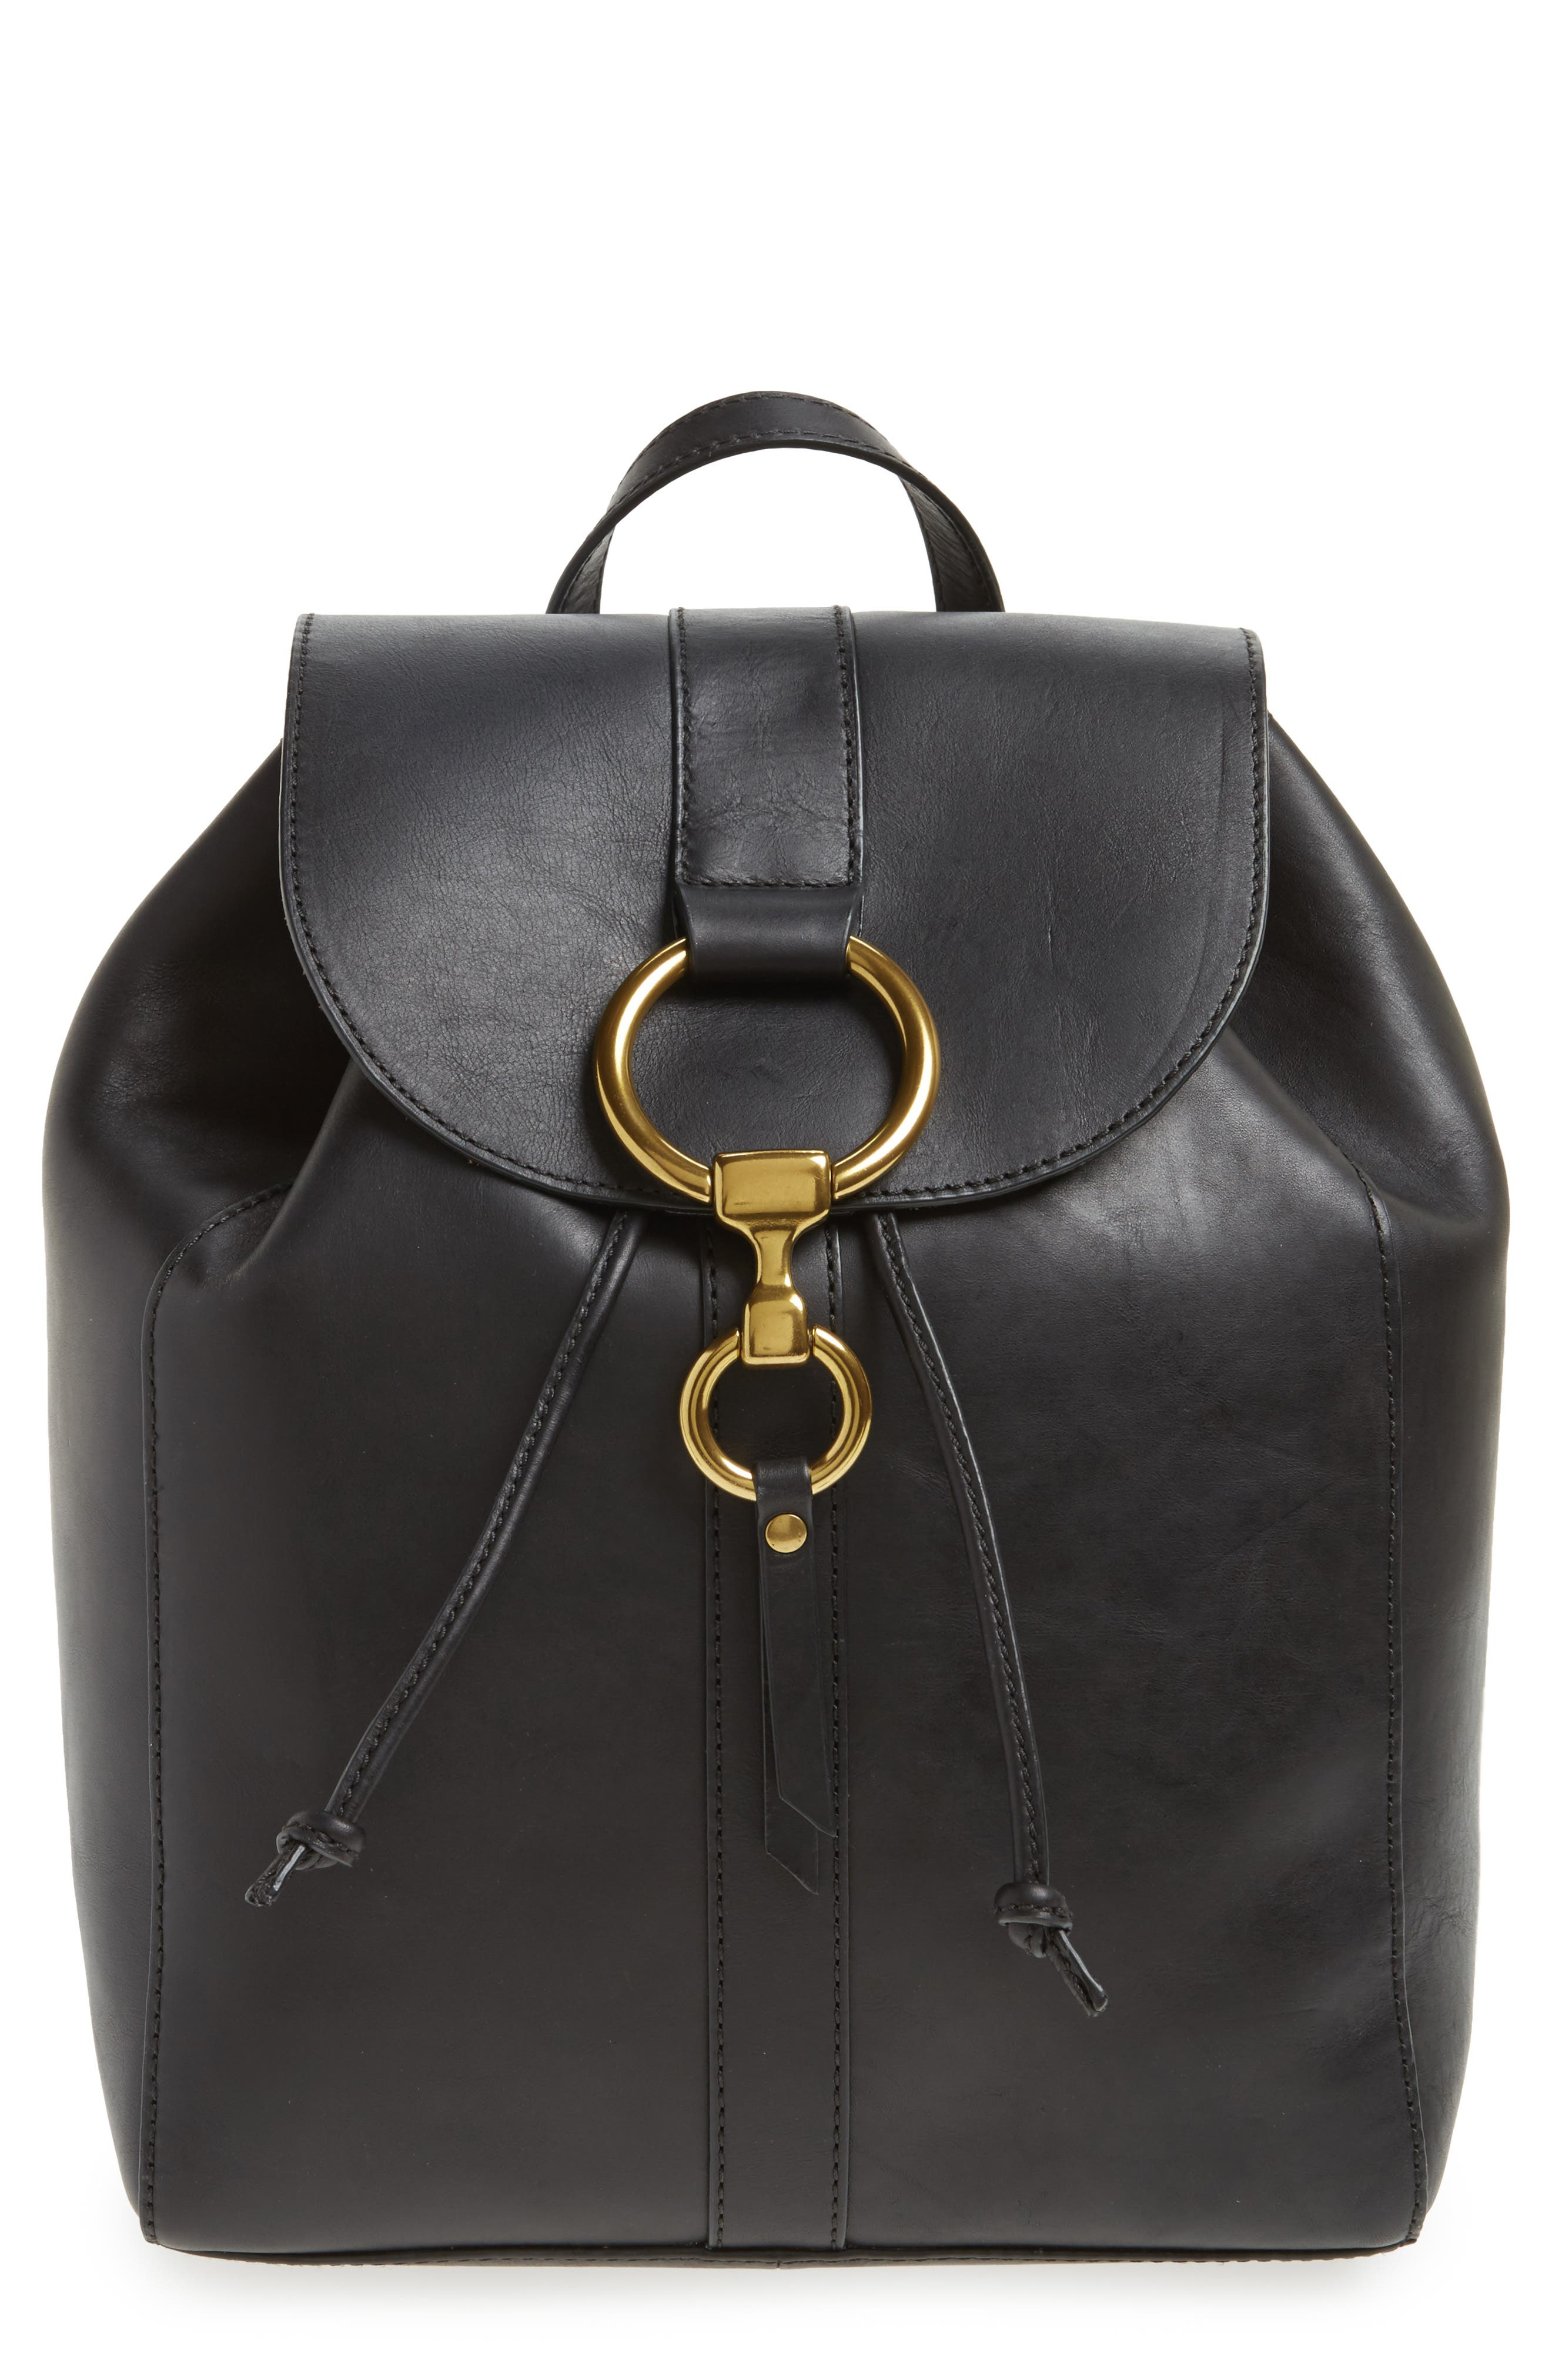 Ilana Harness Leather Backpack,                         Main,                         color, Black